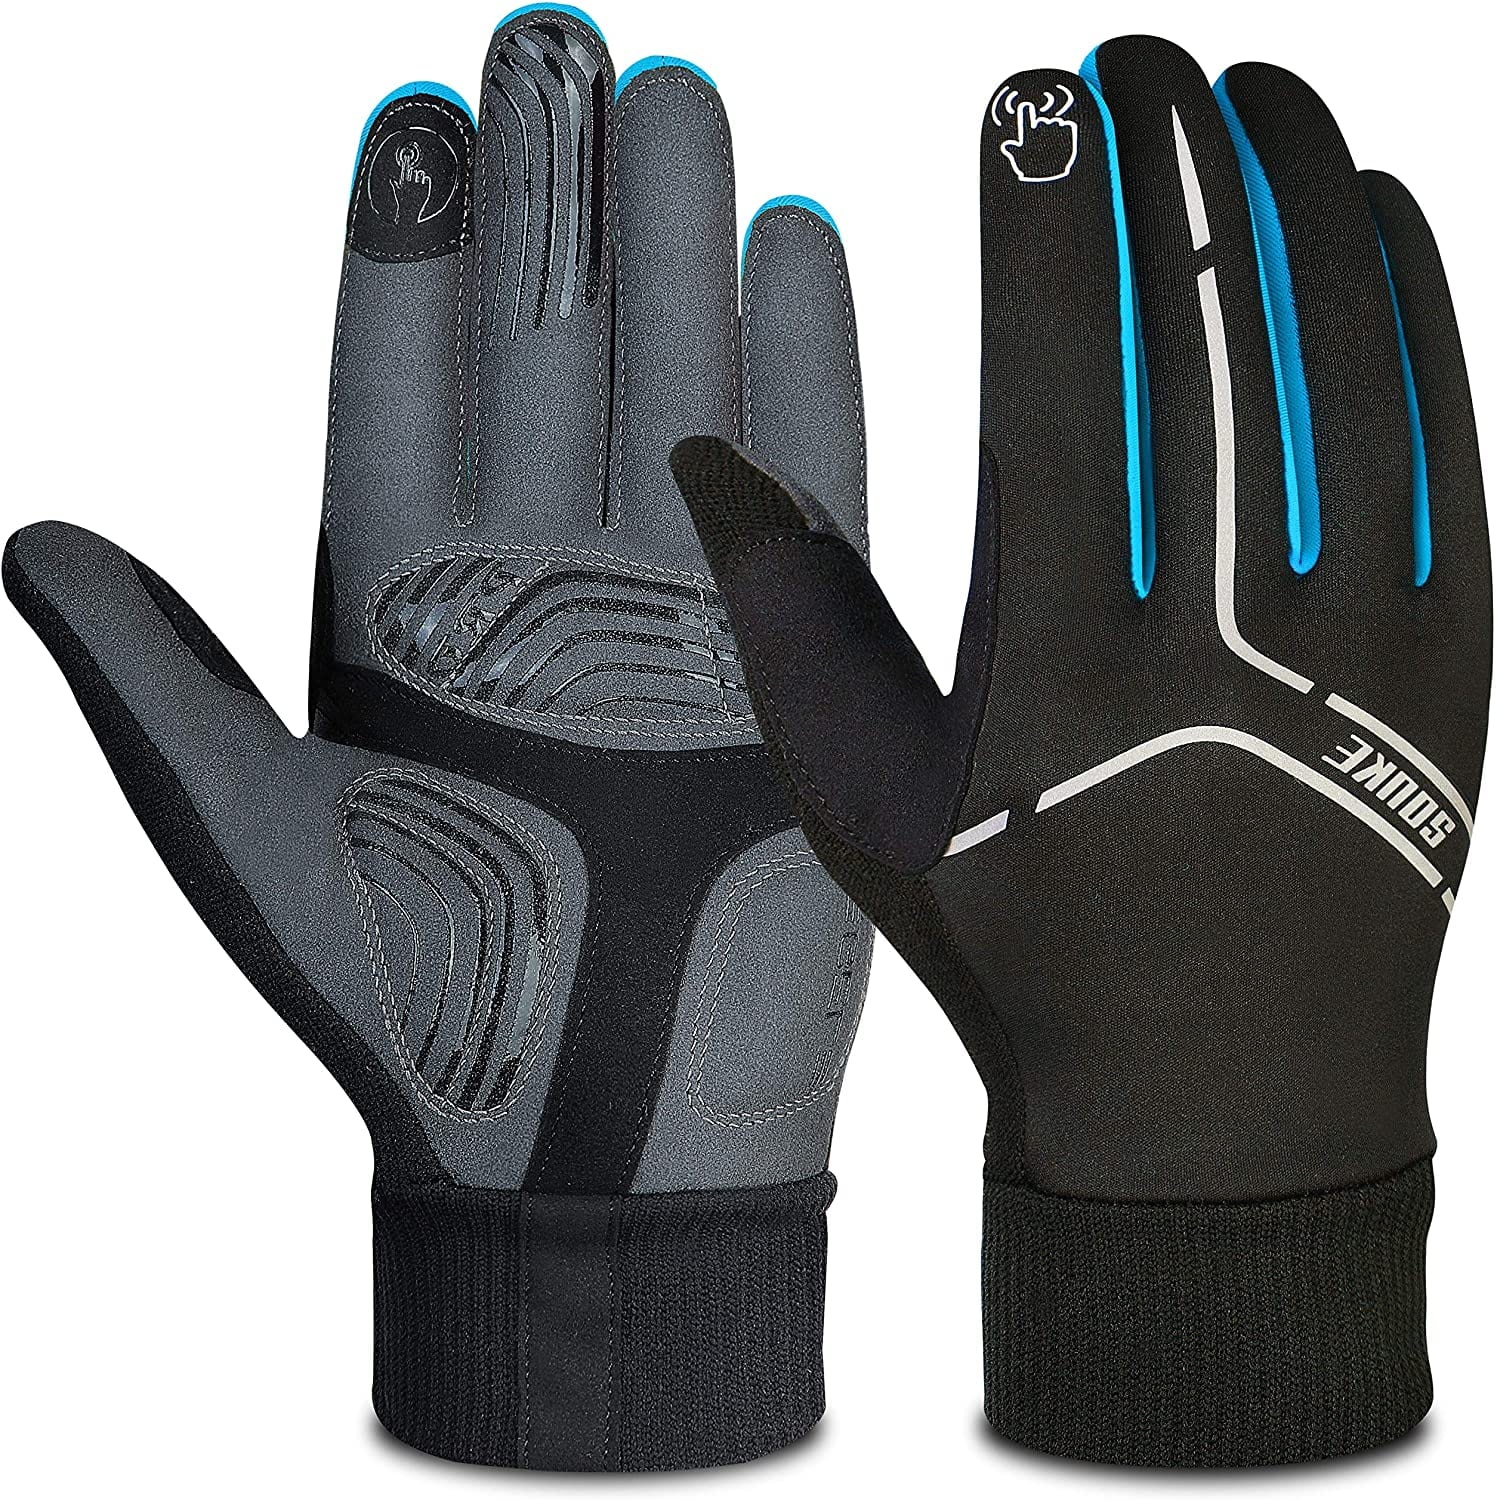 souke sports winter cycling gloves for men and women